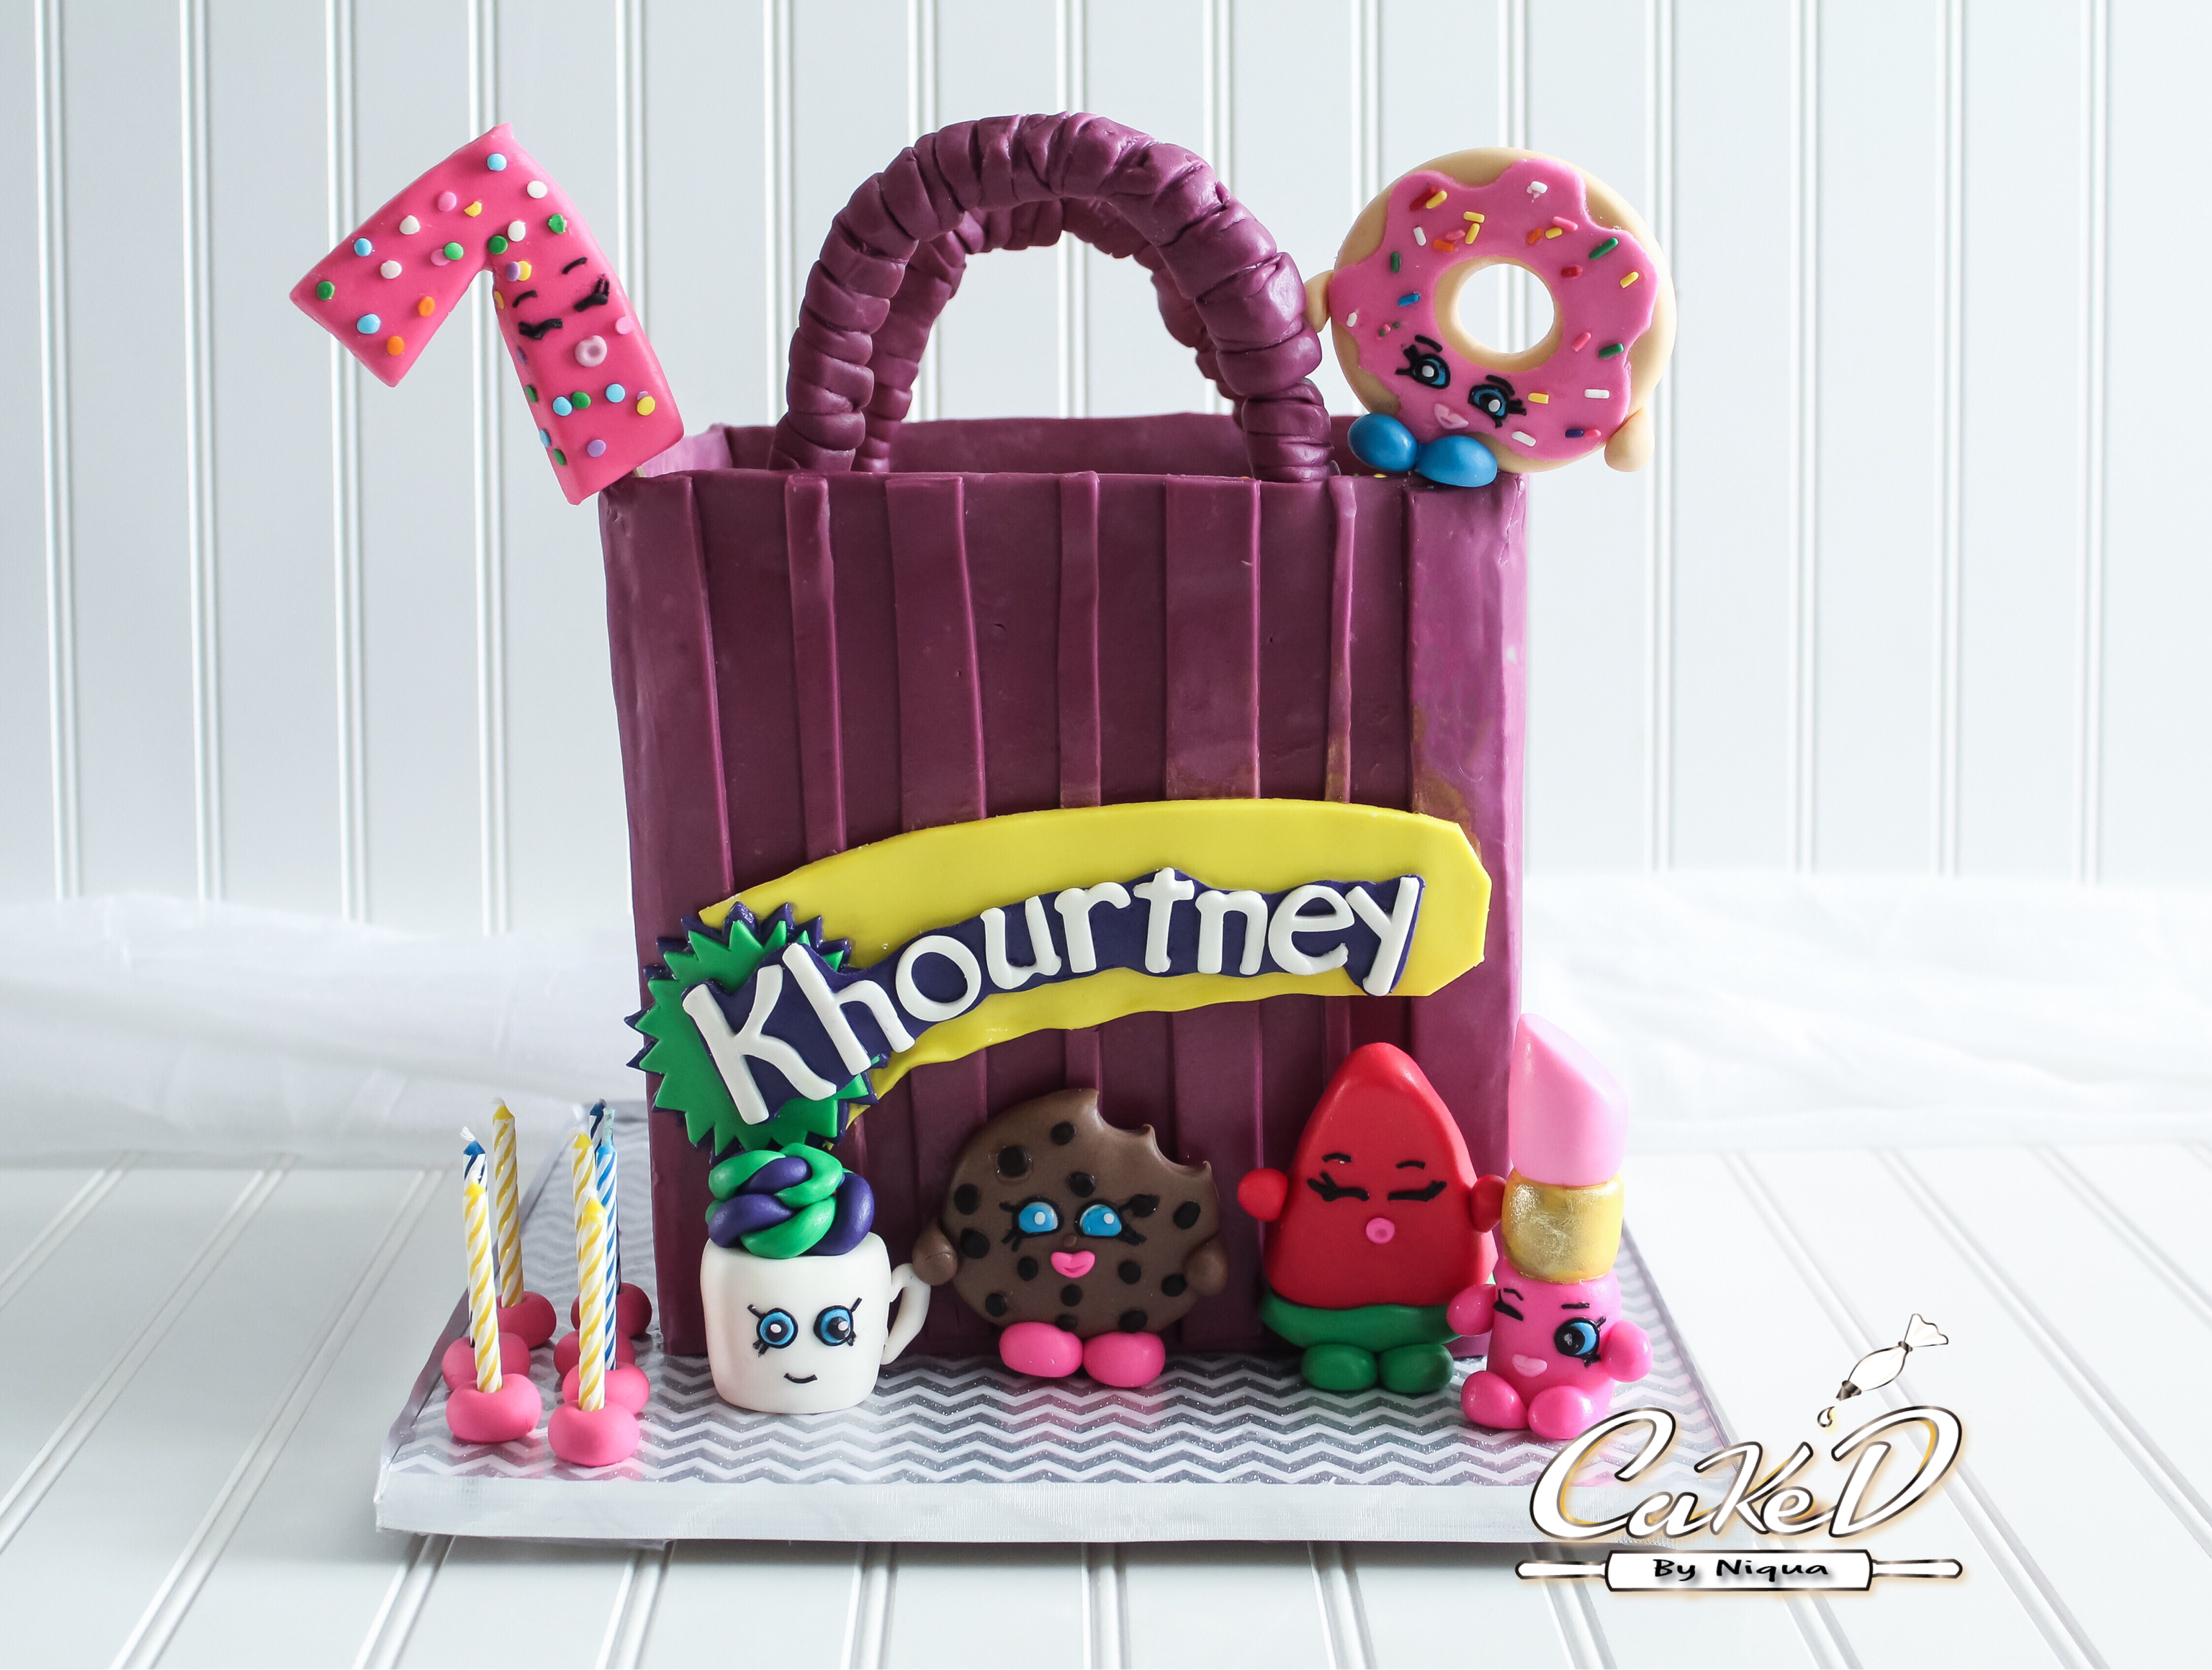 Shopkins Shopping Bag Cake